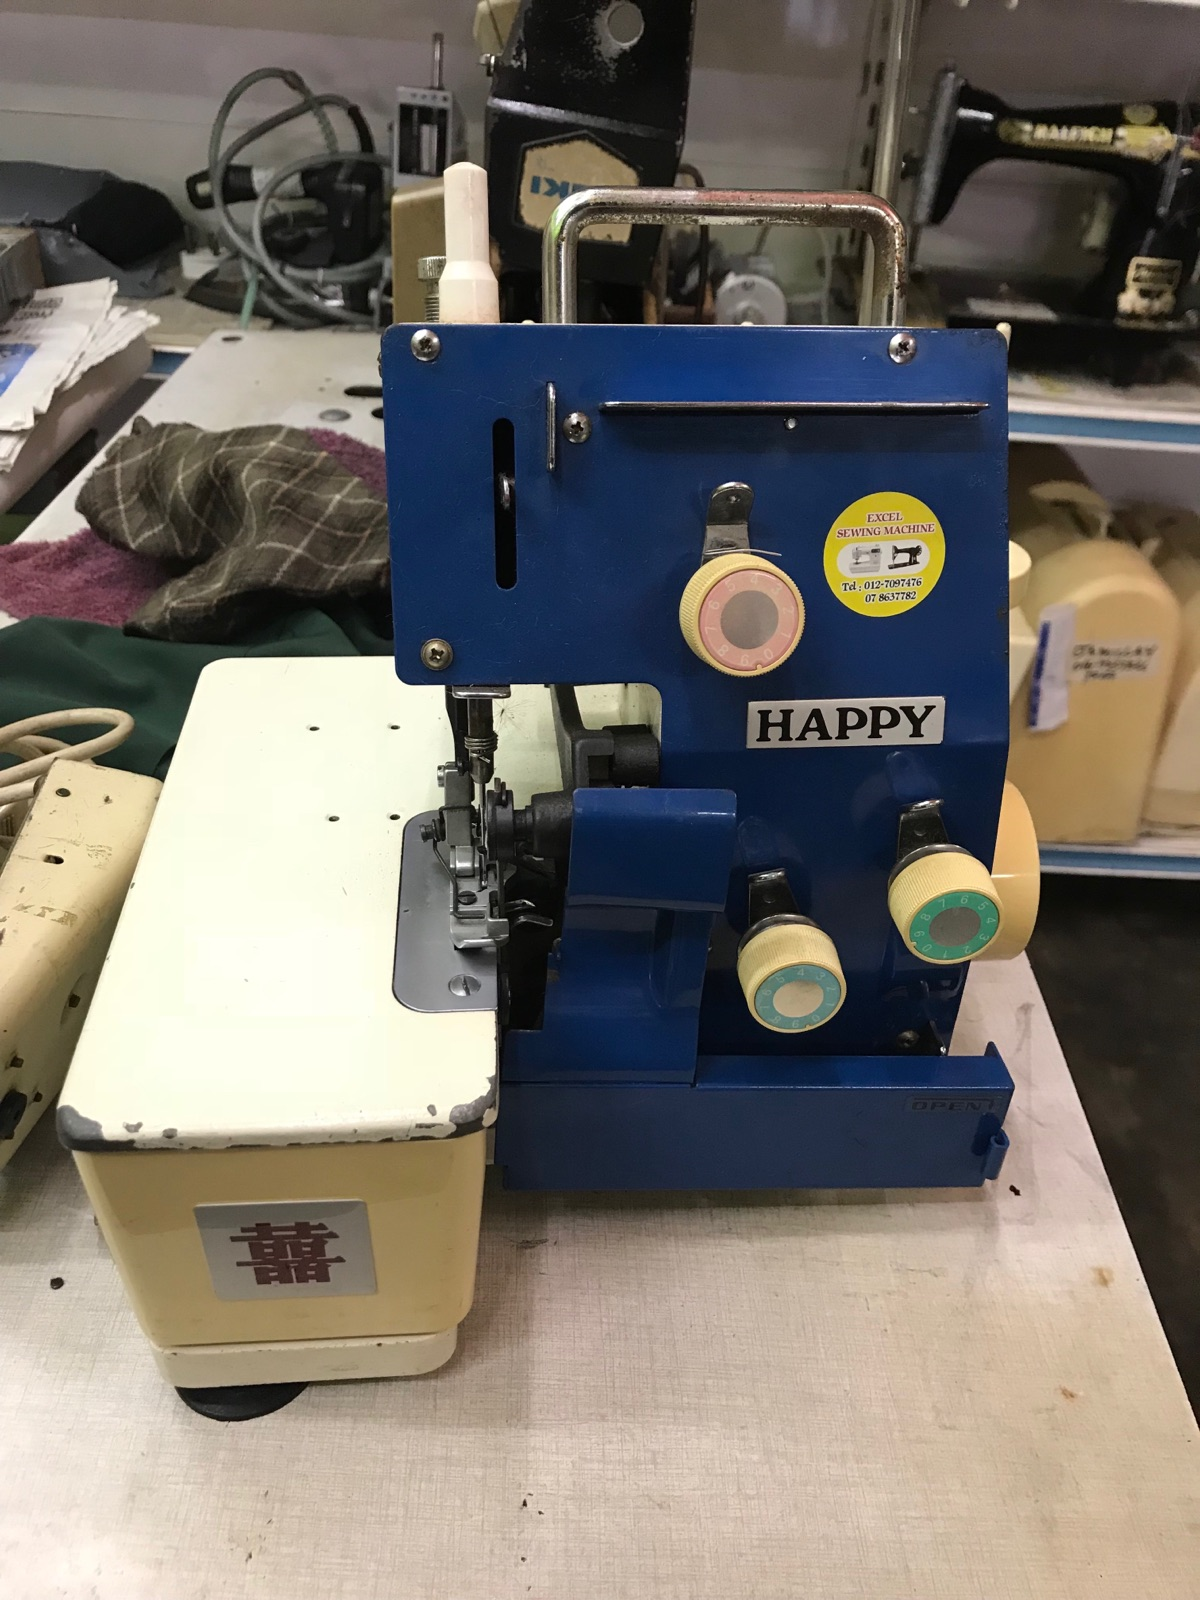 Happy Portable Overlock Sewing Machine